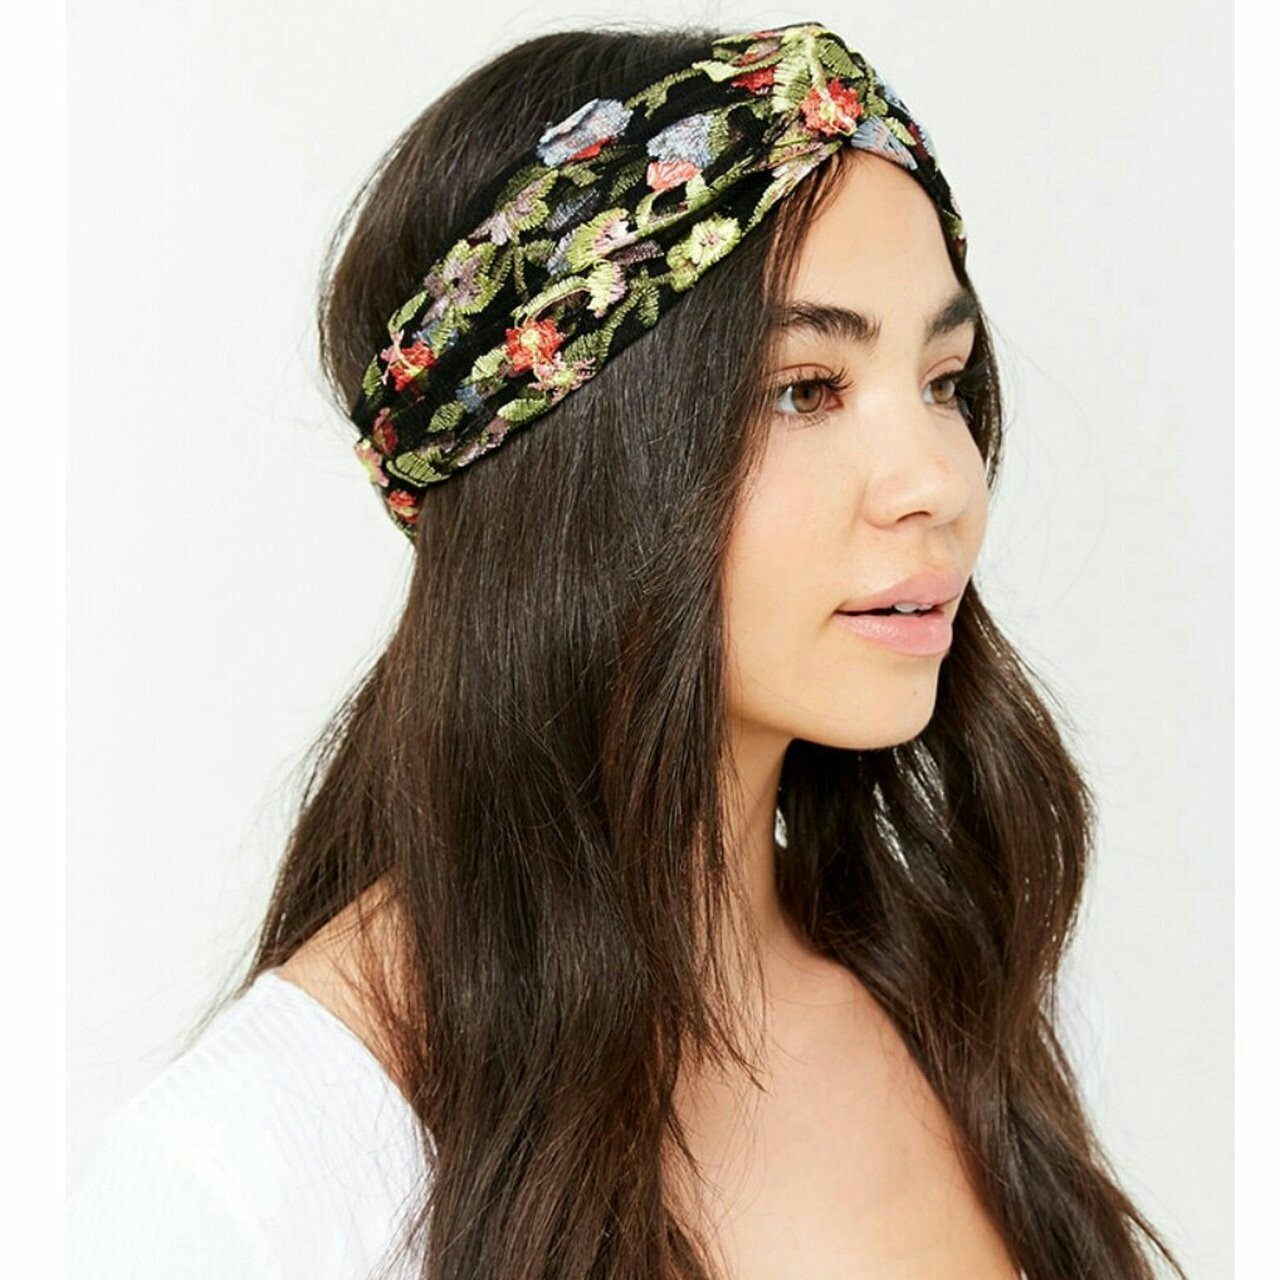 Forever 21 sheer mesh floral embroidered headwrap. Feel free - Depop 28a3c75b046